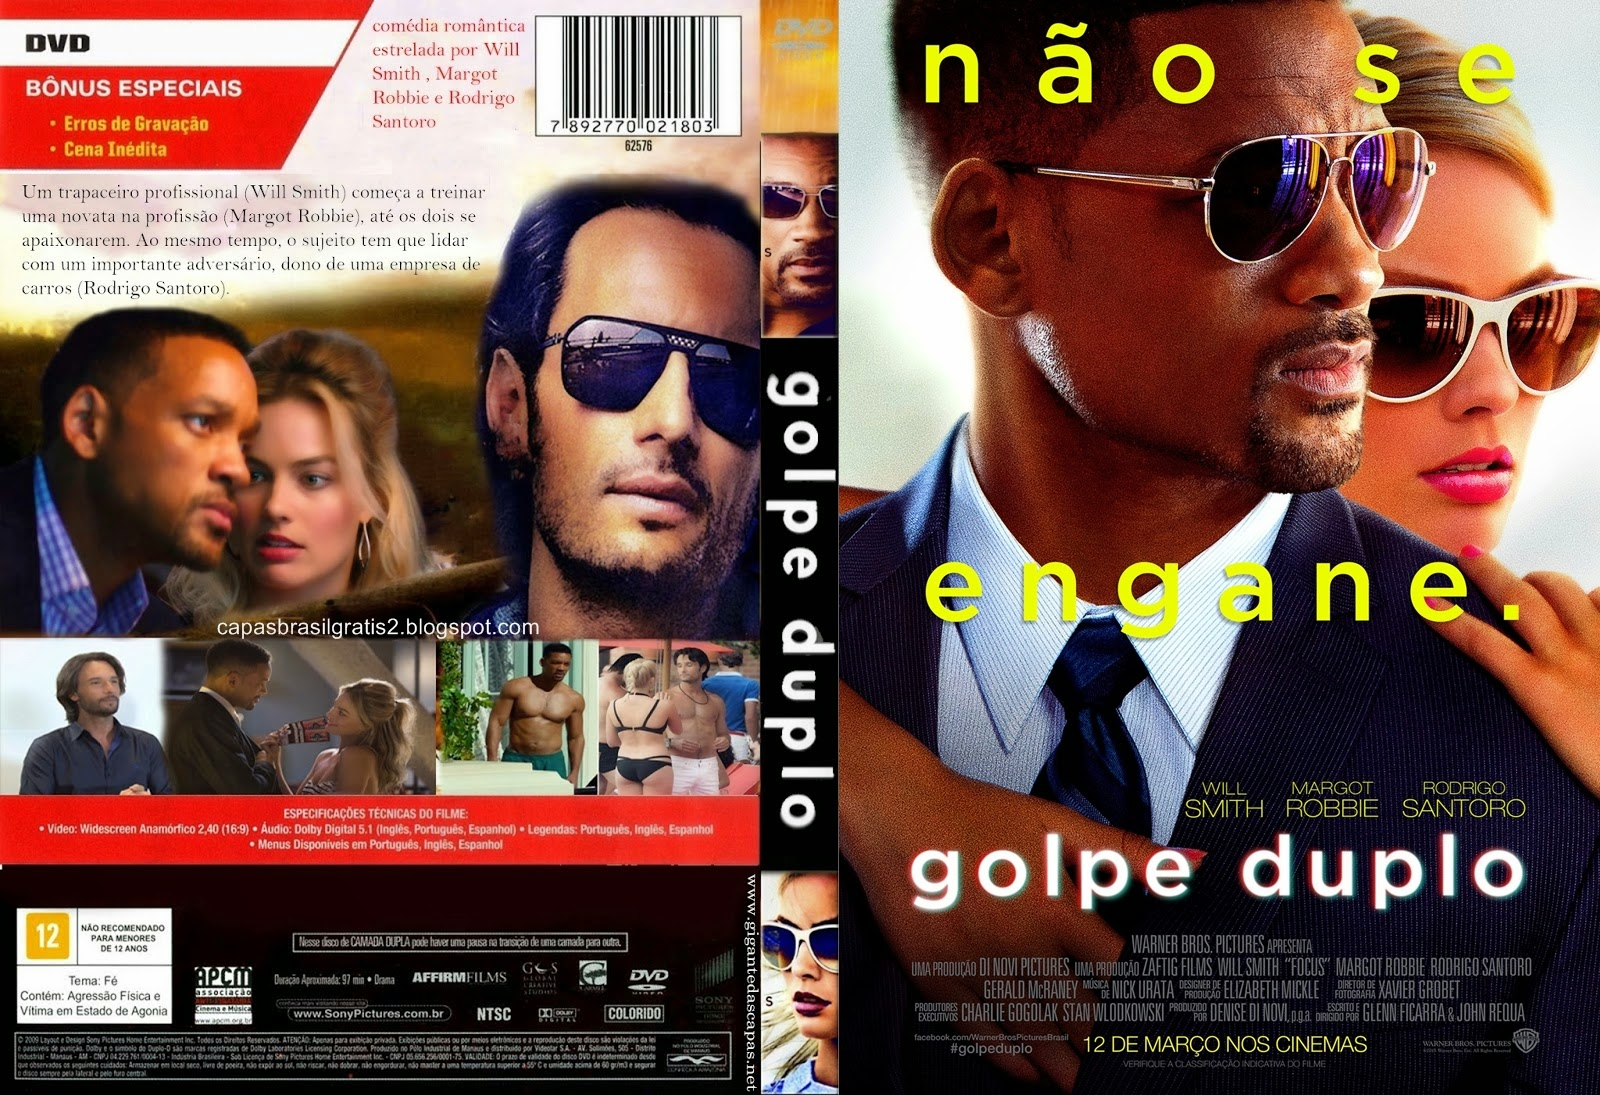 Download Golpe Duplo BDRip XviD Dual Áudio Golpe 2BDluplo 2B3